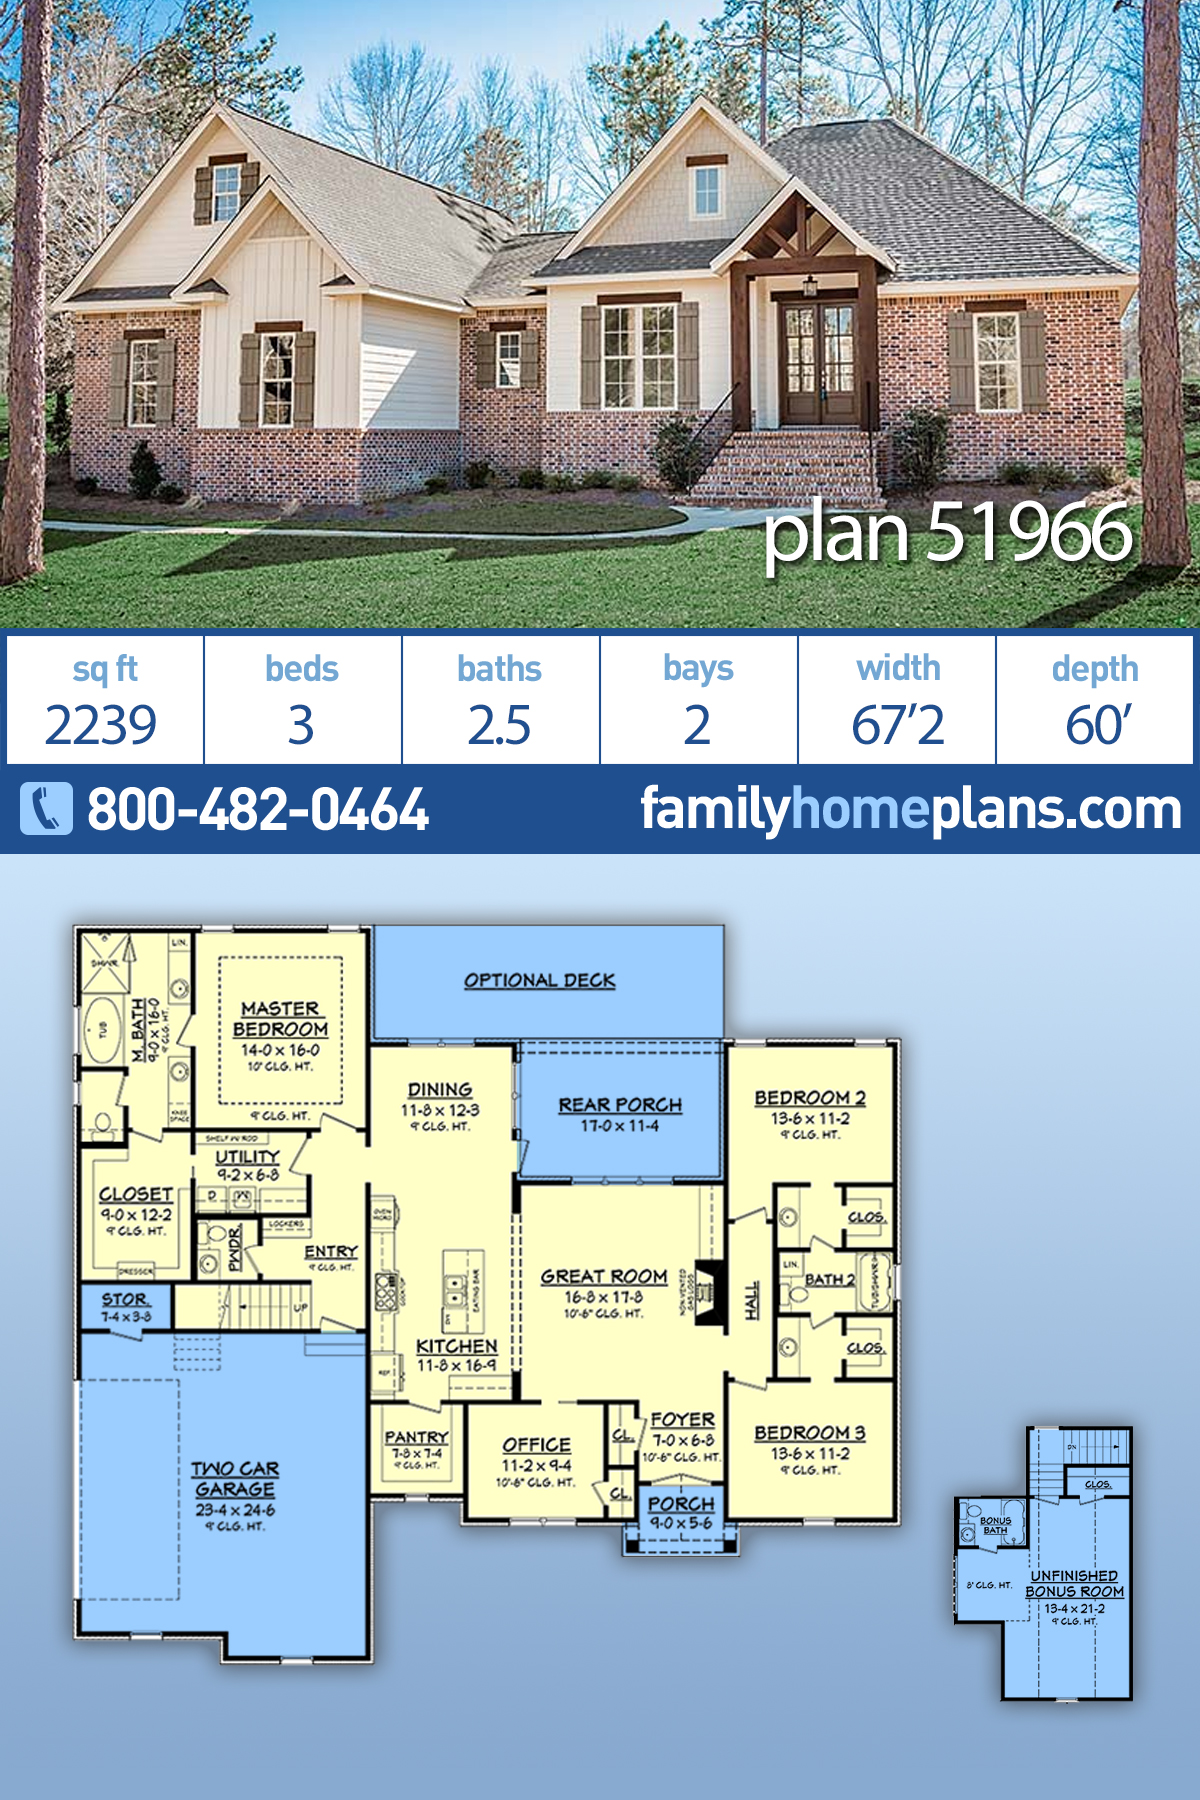 Country, French Country, Traditional House Plan 51966 with 3 Beds, 3 Baths, 2 Car Garage